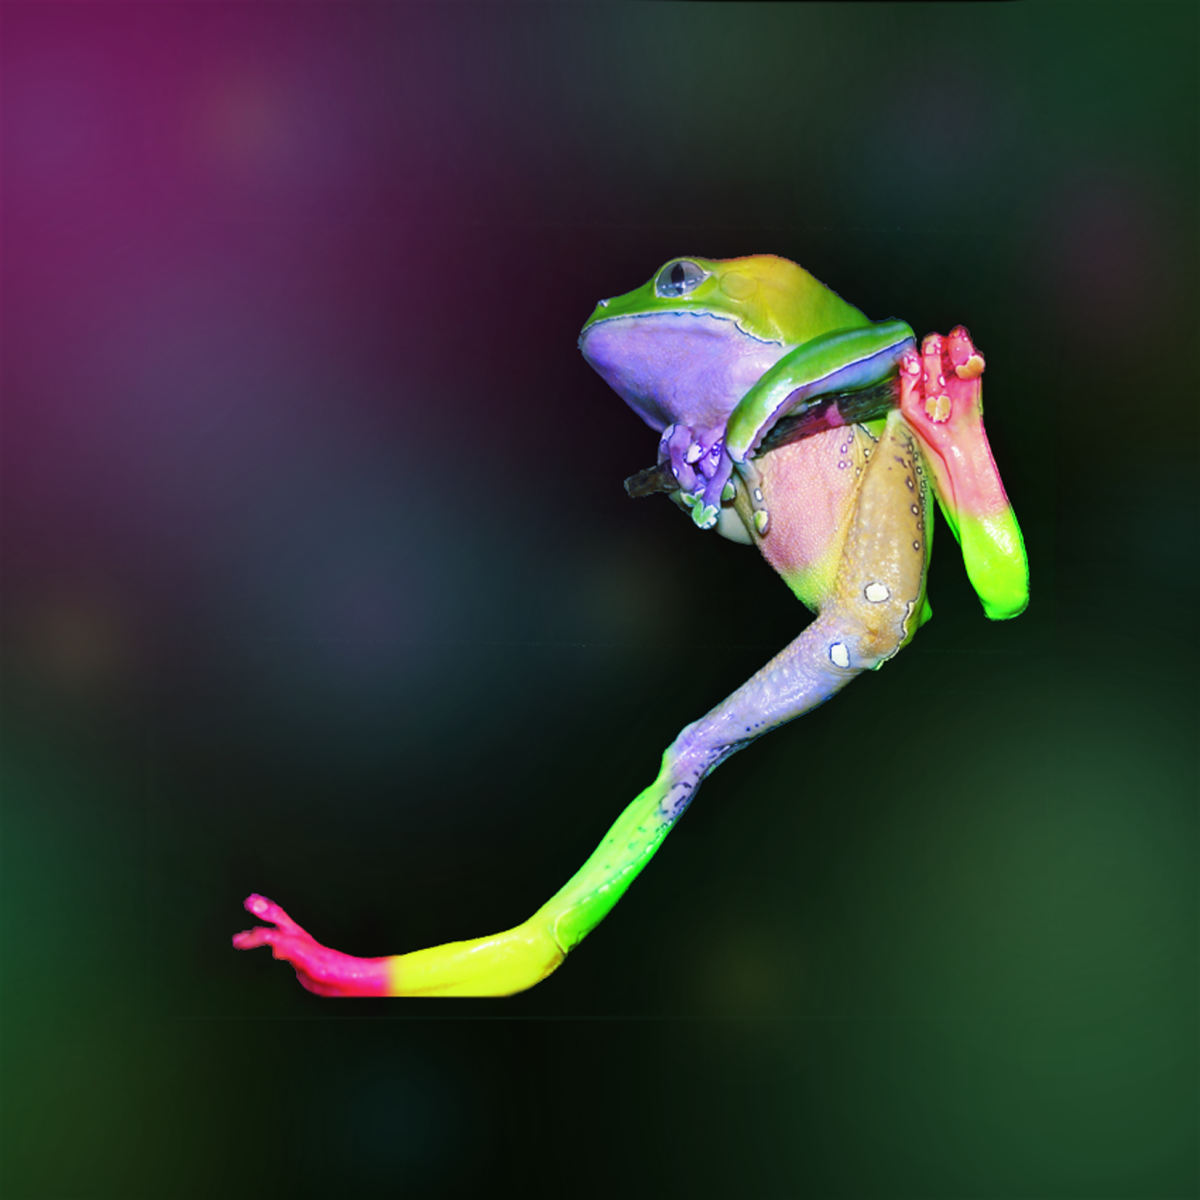 My poor frog Zoidberg with Photoshop body paint.